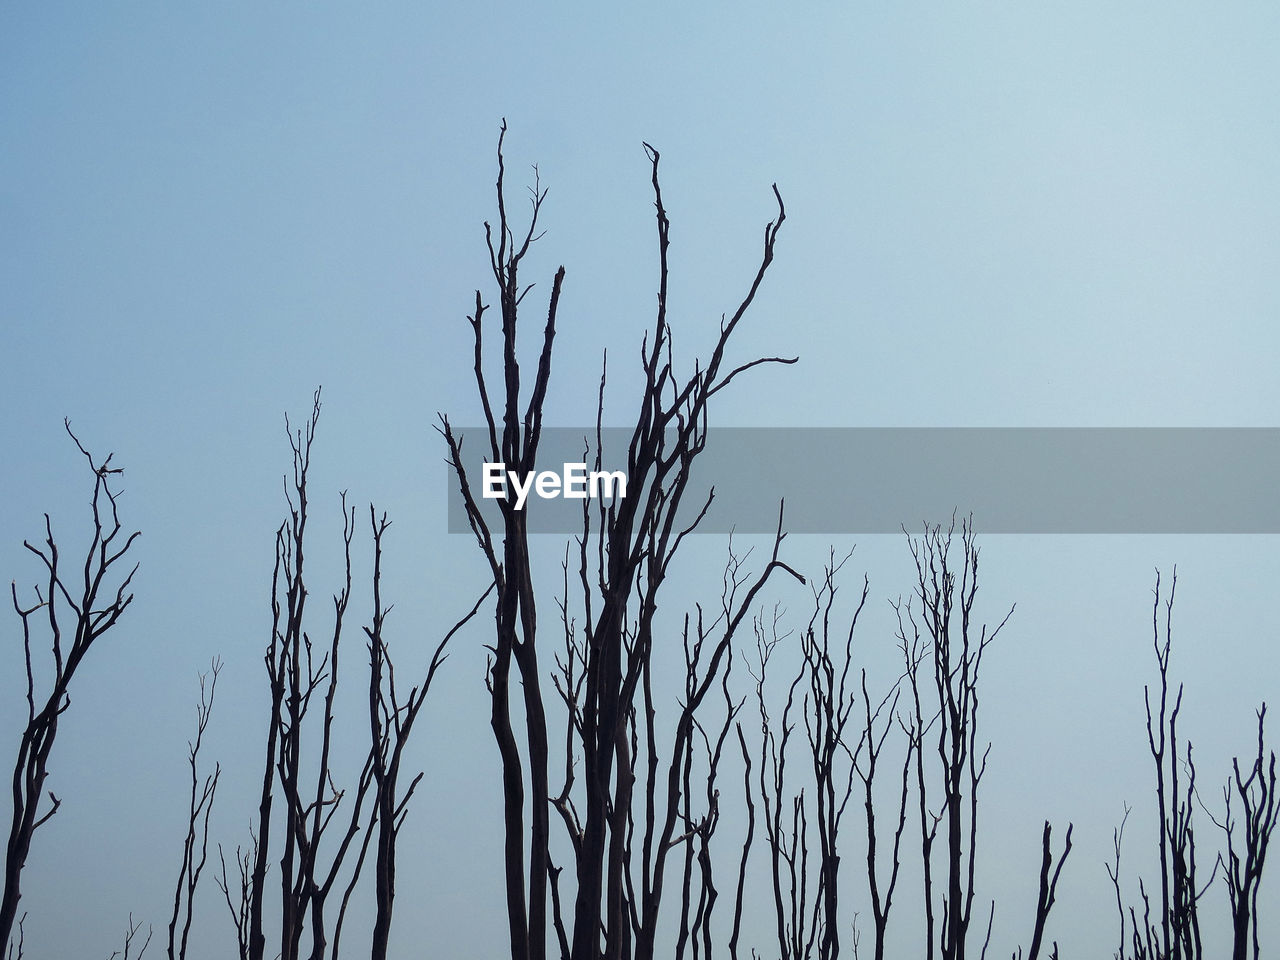 nature, bare tree, clear sky, tranquility, low angle view, day, growth, plant, outdoors, no people, dead plant, beauty in nature, branch, blue, dried plant, tree, sky